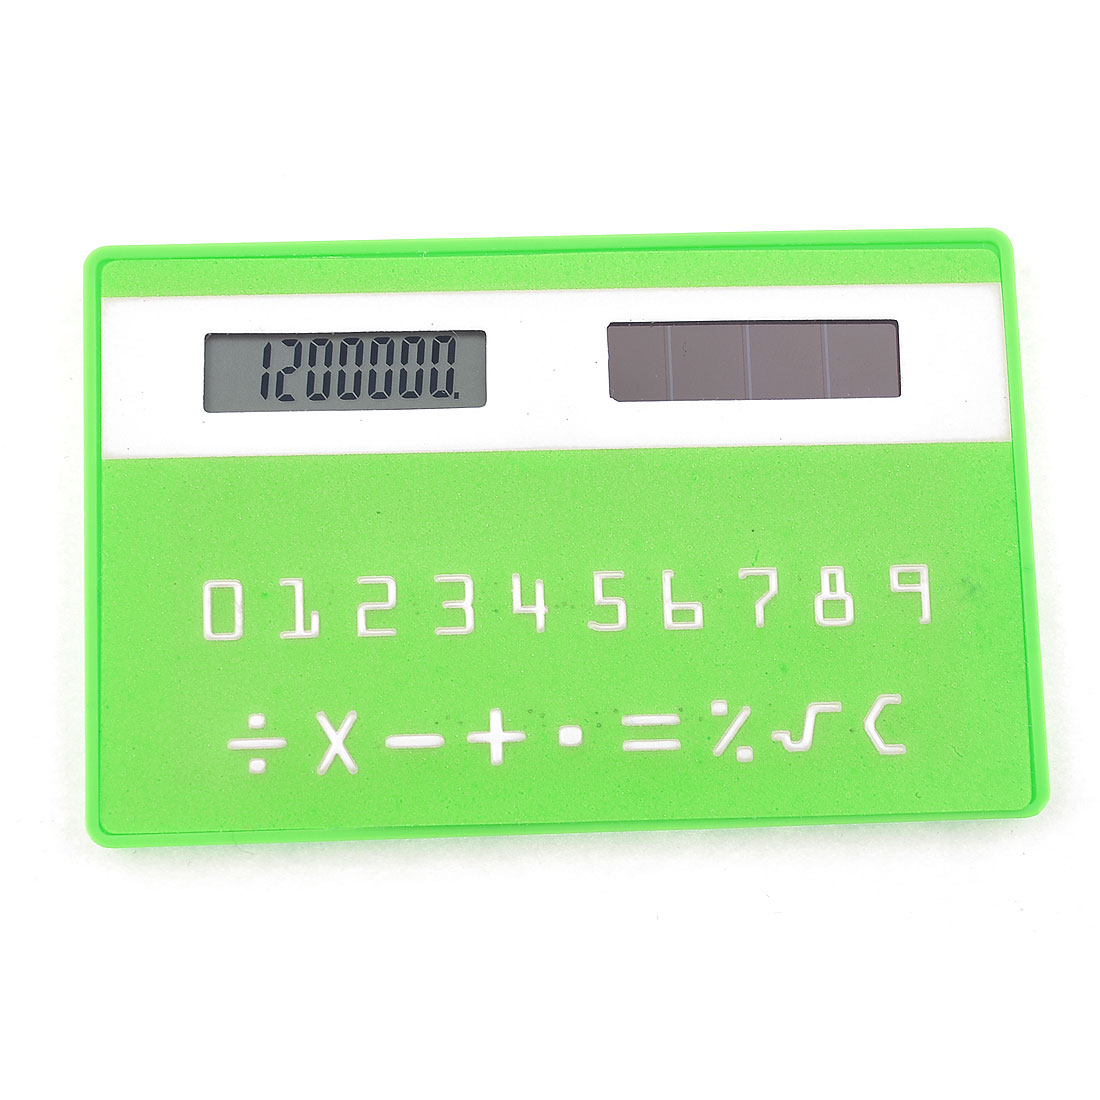 Home Office 8.6cm x 5.4cm Rectangle Shape 8 Digits LCD Pocket Calculator Green